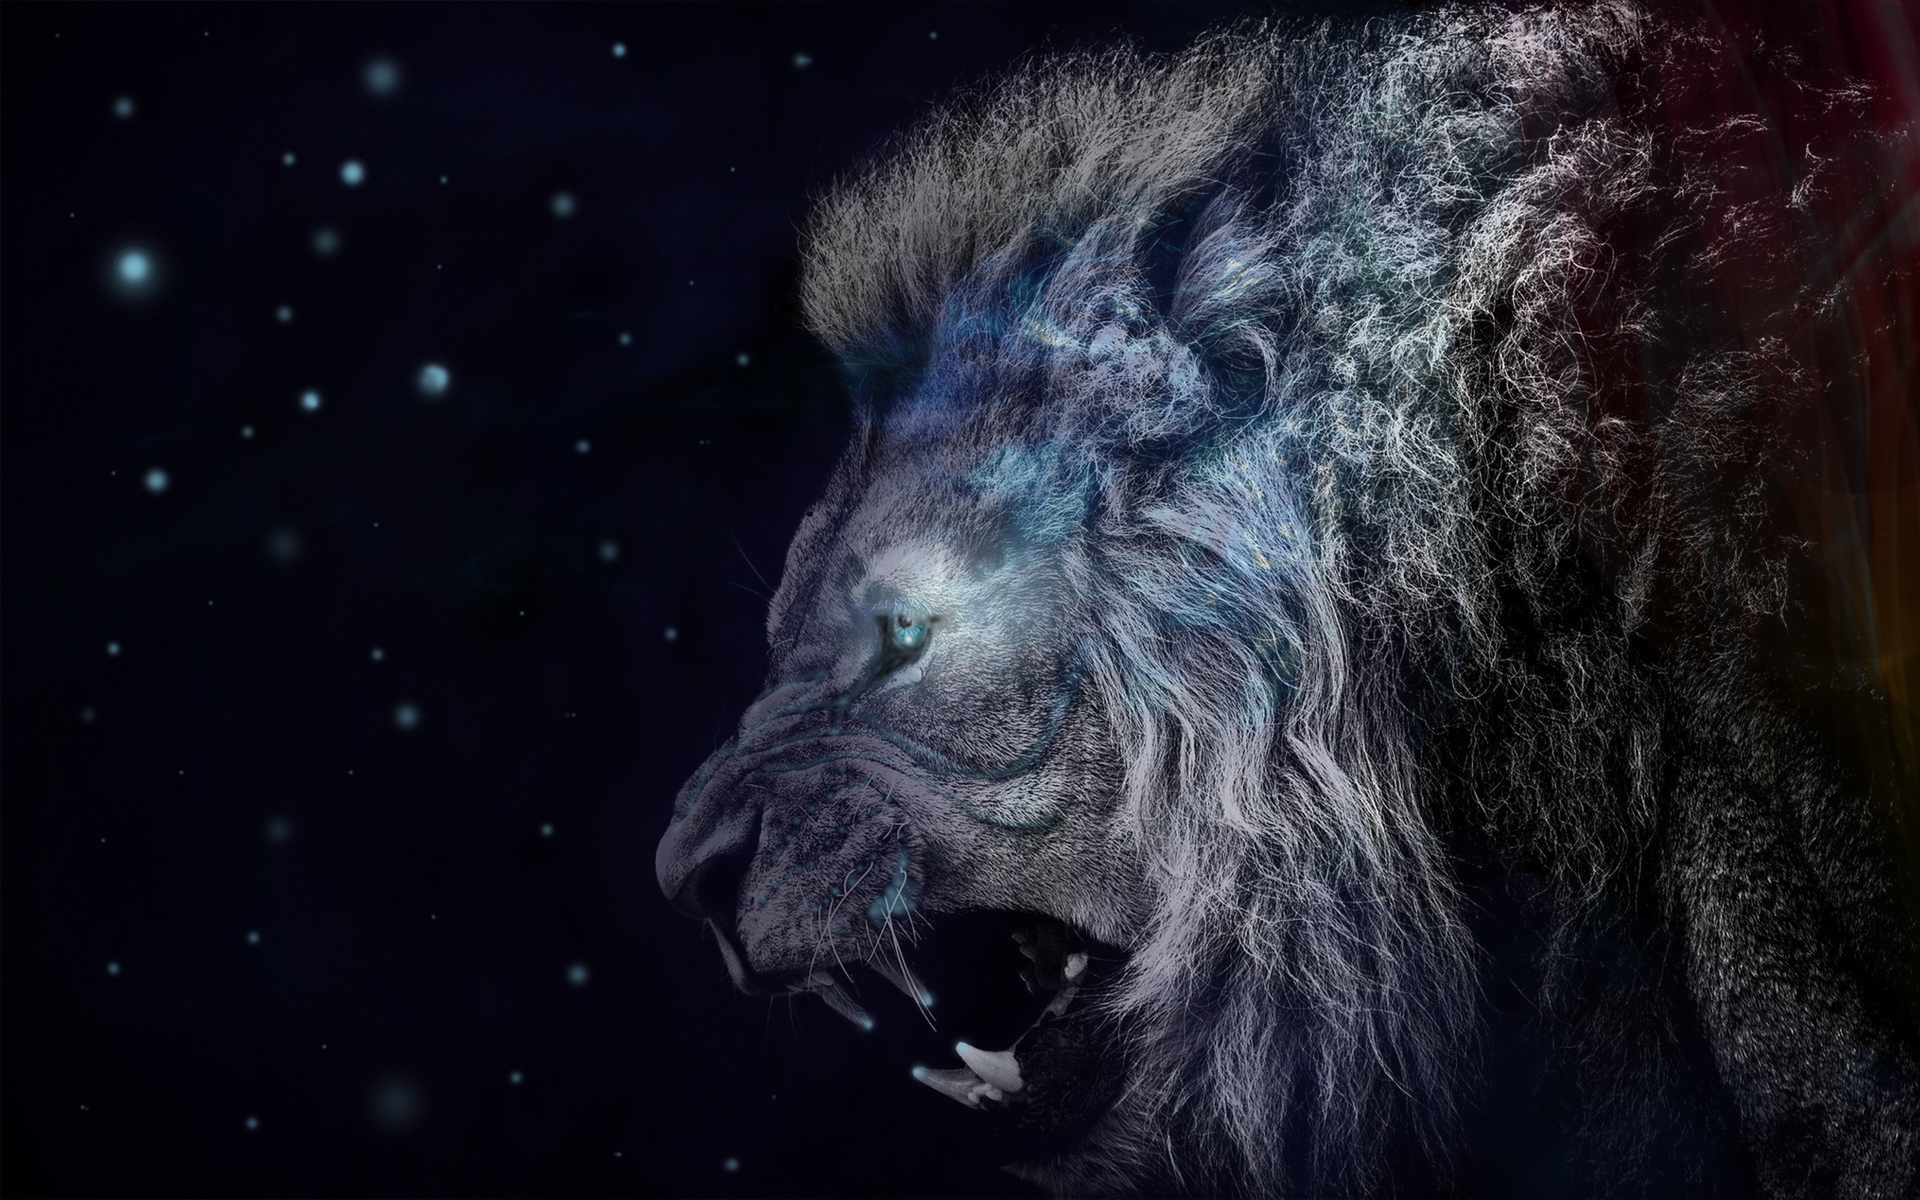 lionfantasywallpaper by j3rryw3st002 on deviantart